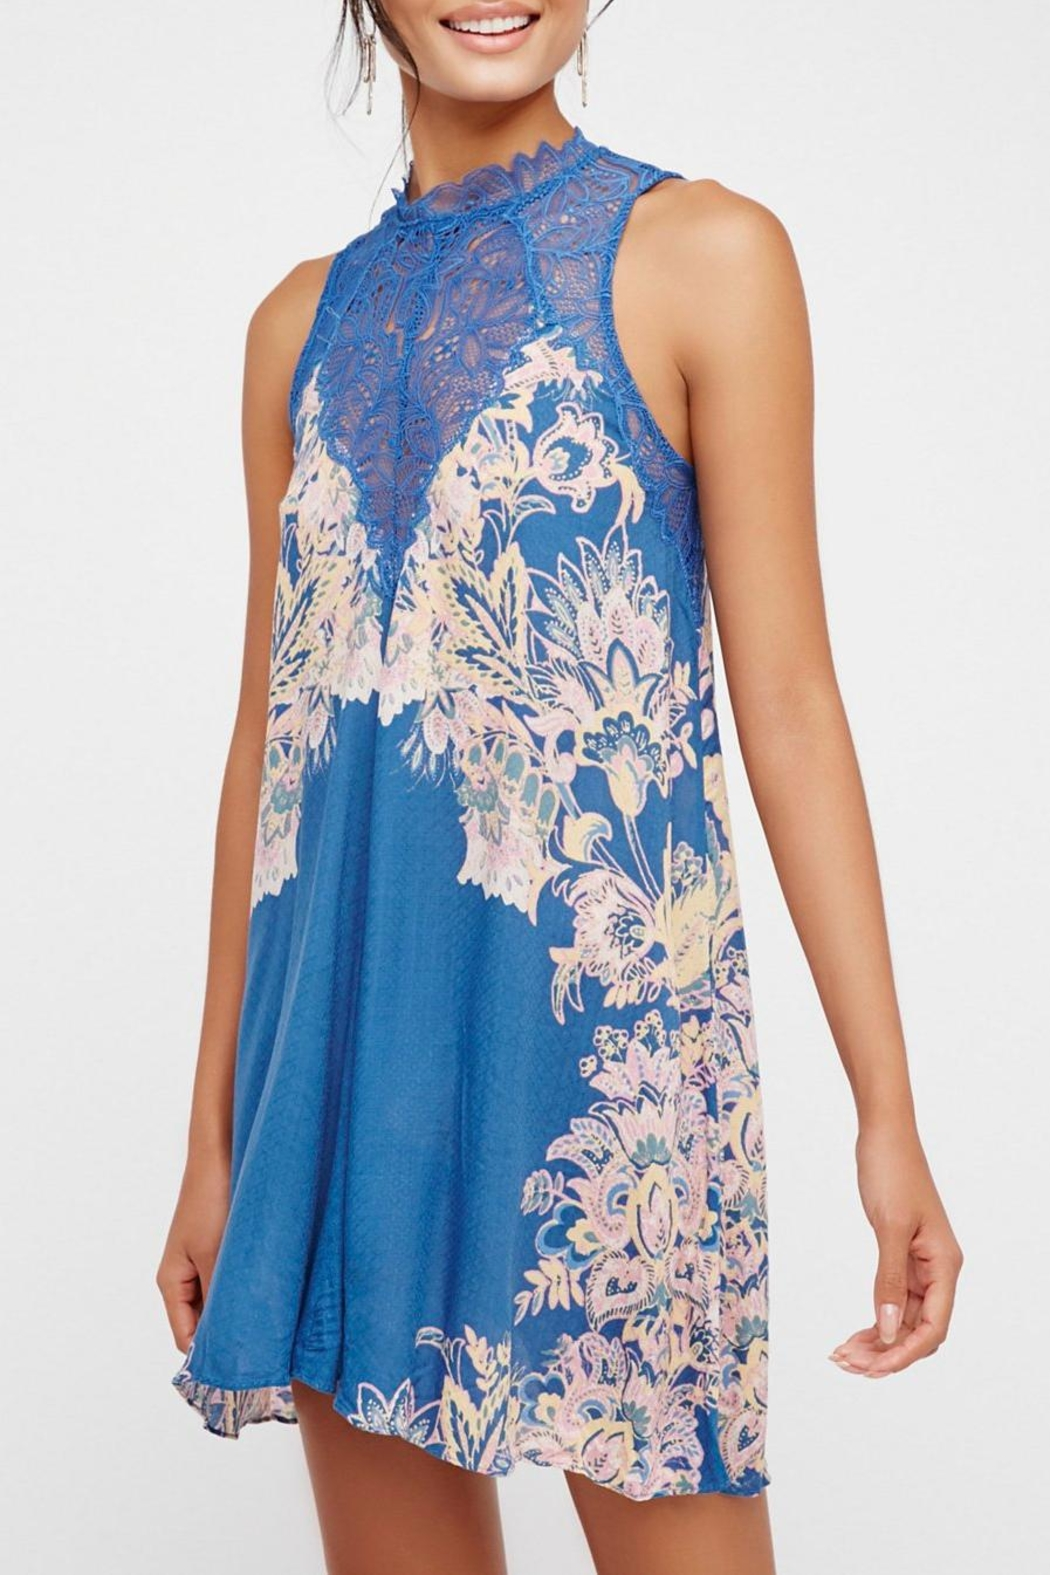 Free People Marsha Printed Slip - Main Image